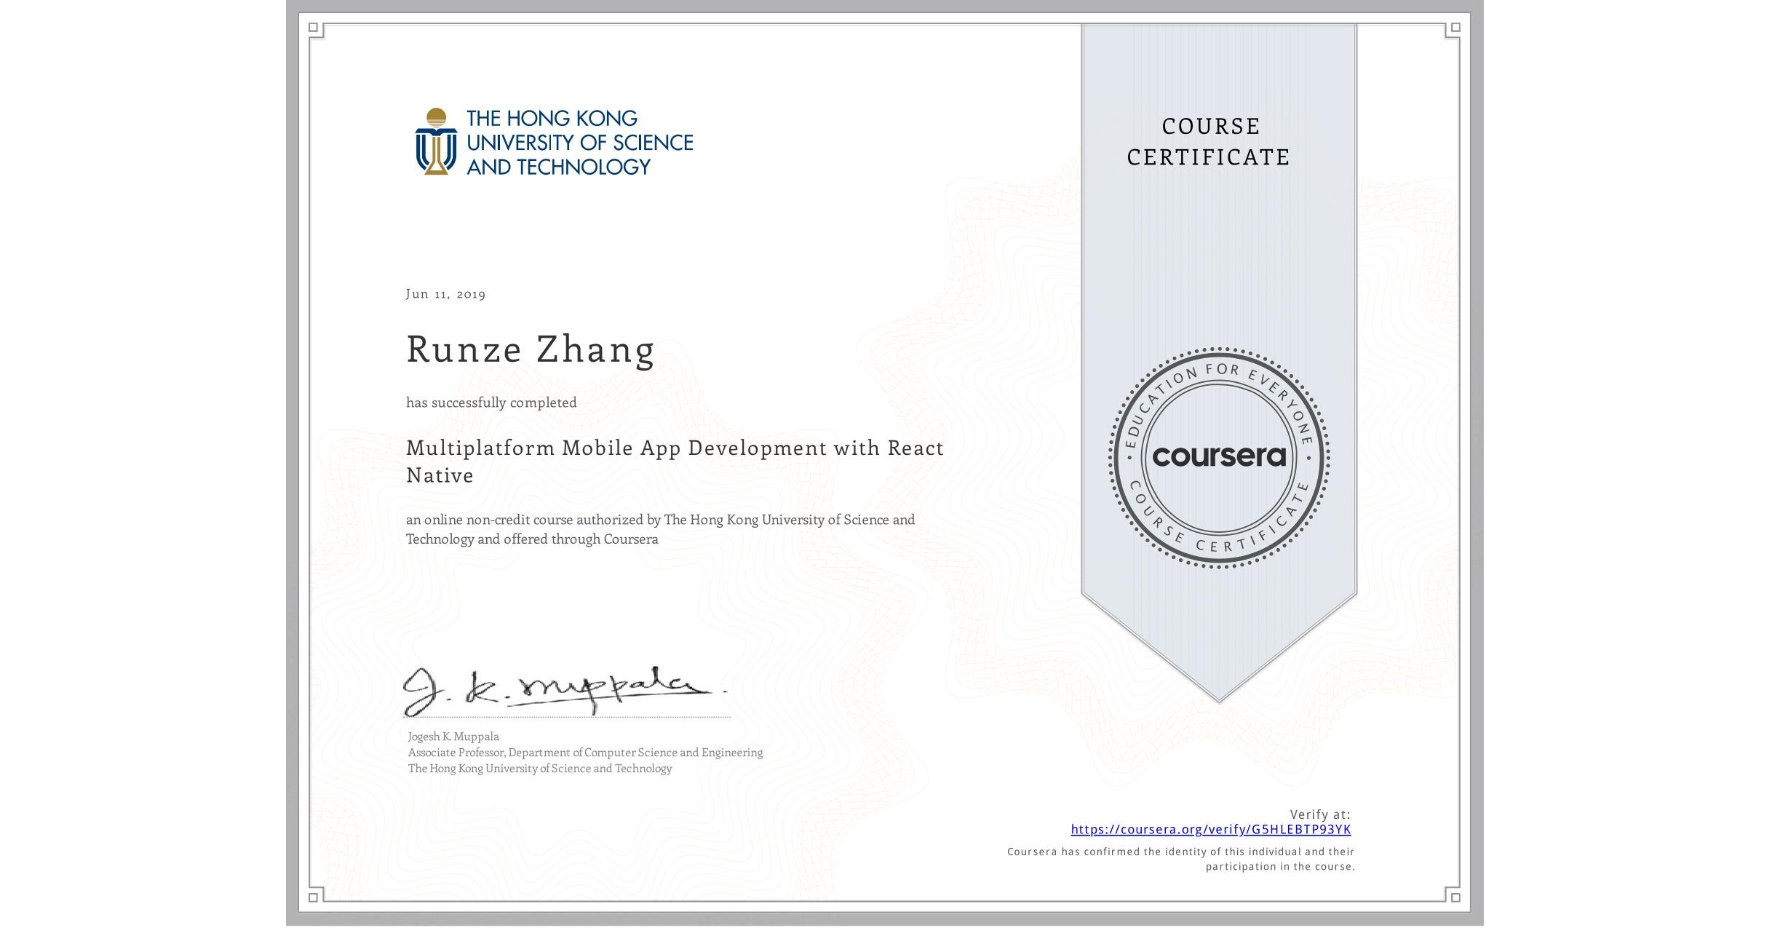 View certificate for Runze Zhang, Multiplatform Mobile App Development with React Native, an online non-credit course authorized by The Hong Kong University of Science and Technology and offered through Coursera